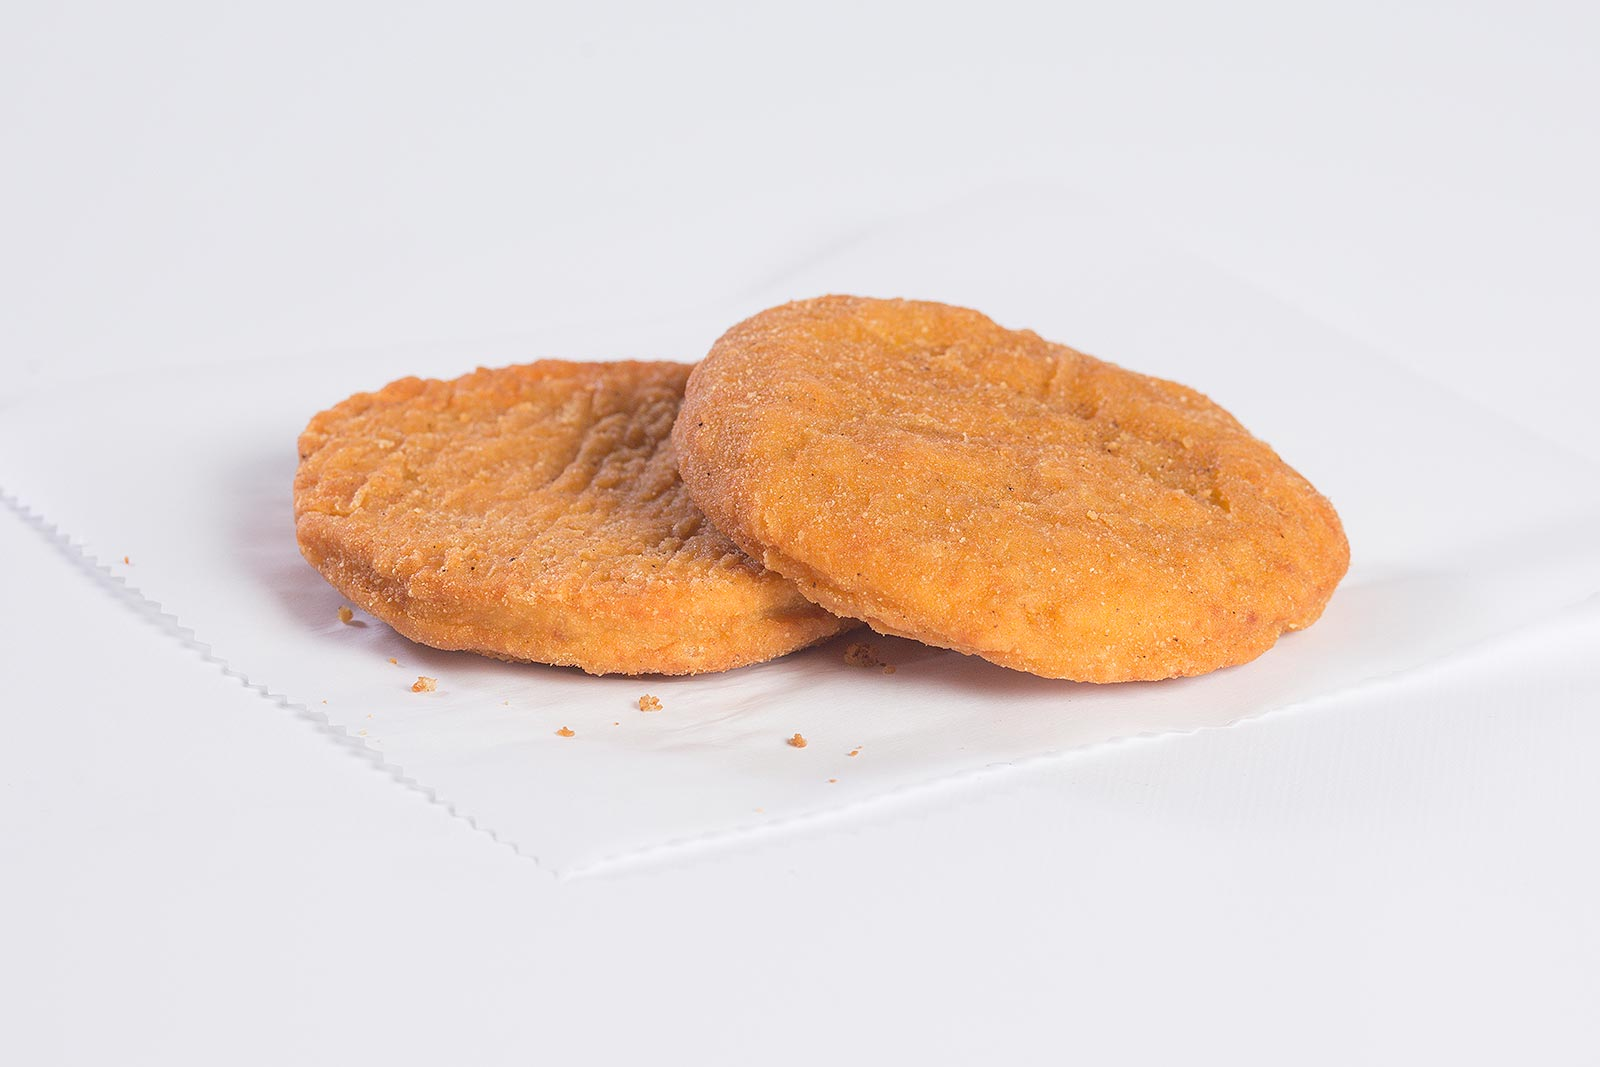 Country Pride Breaded Breast Pattie image